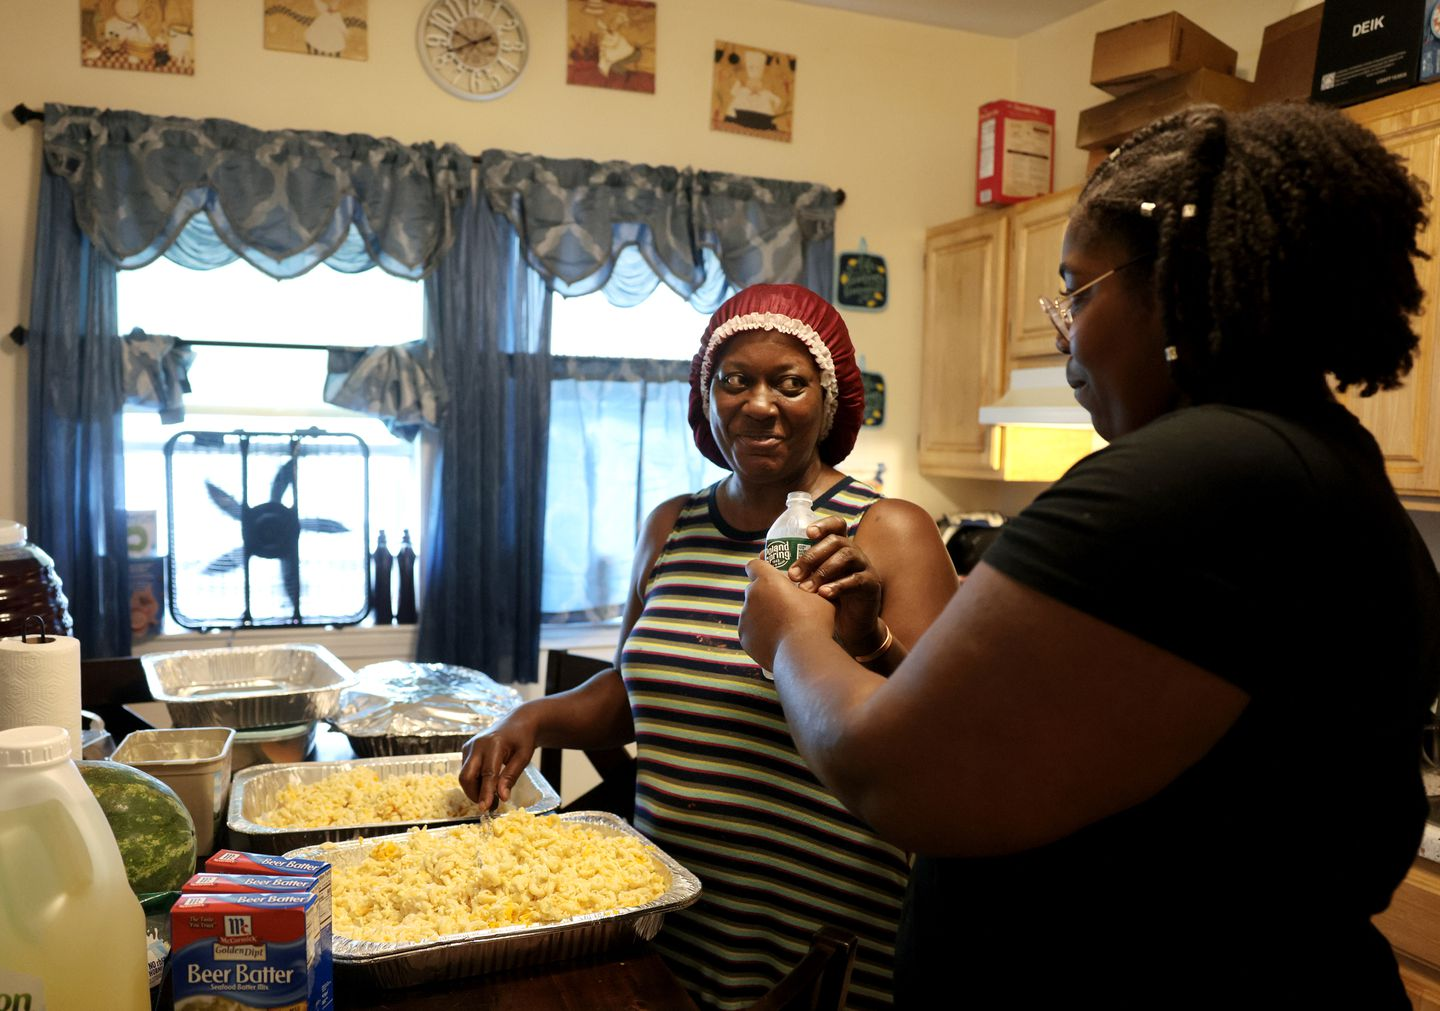 Bonita Cuff (left) and her daughter Janaya, 21, helped prepare food for a church cookout.